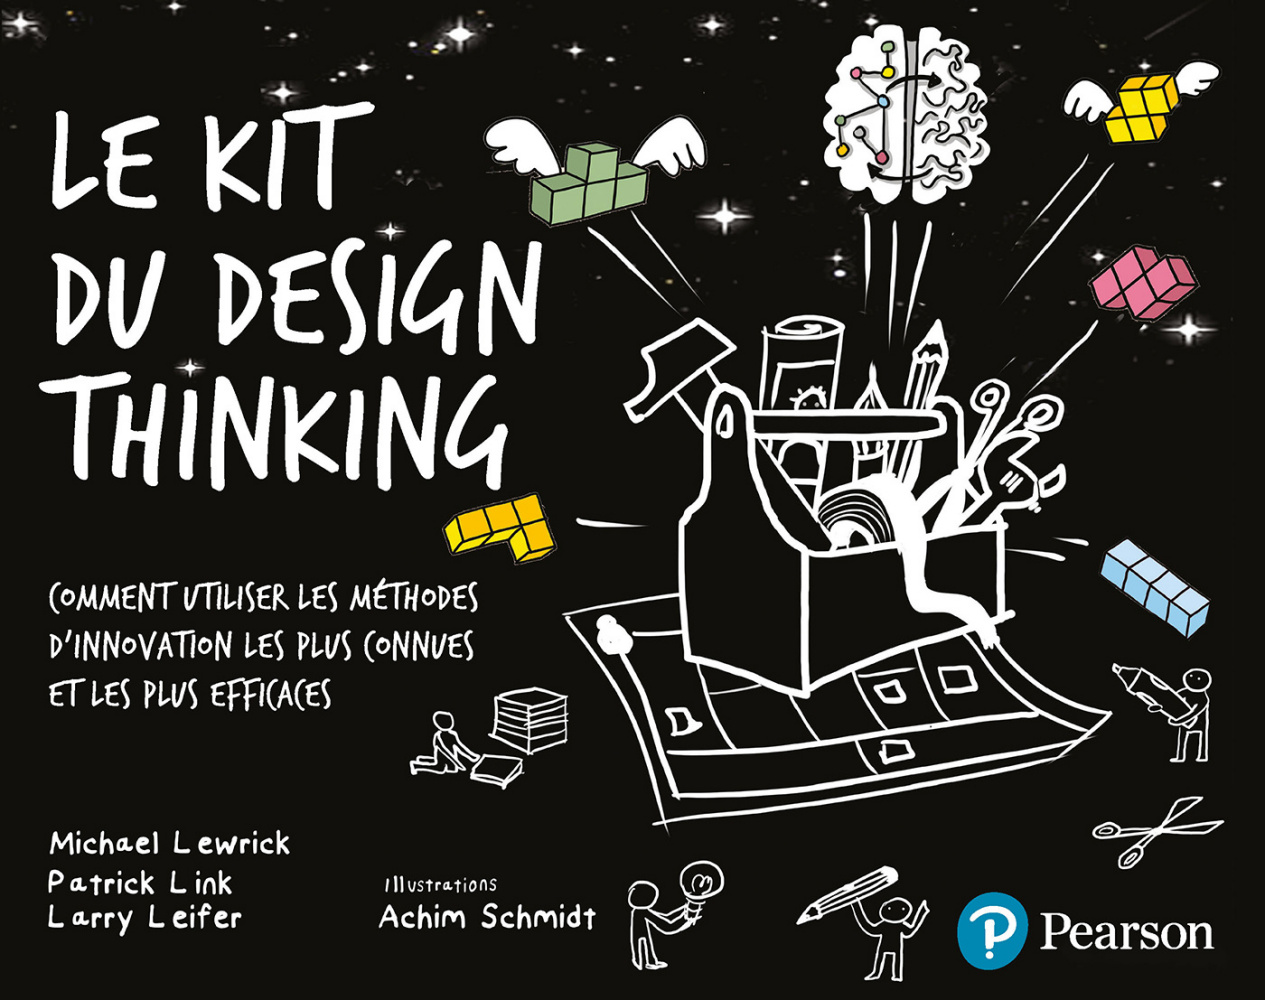 Le Kit du design thinking